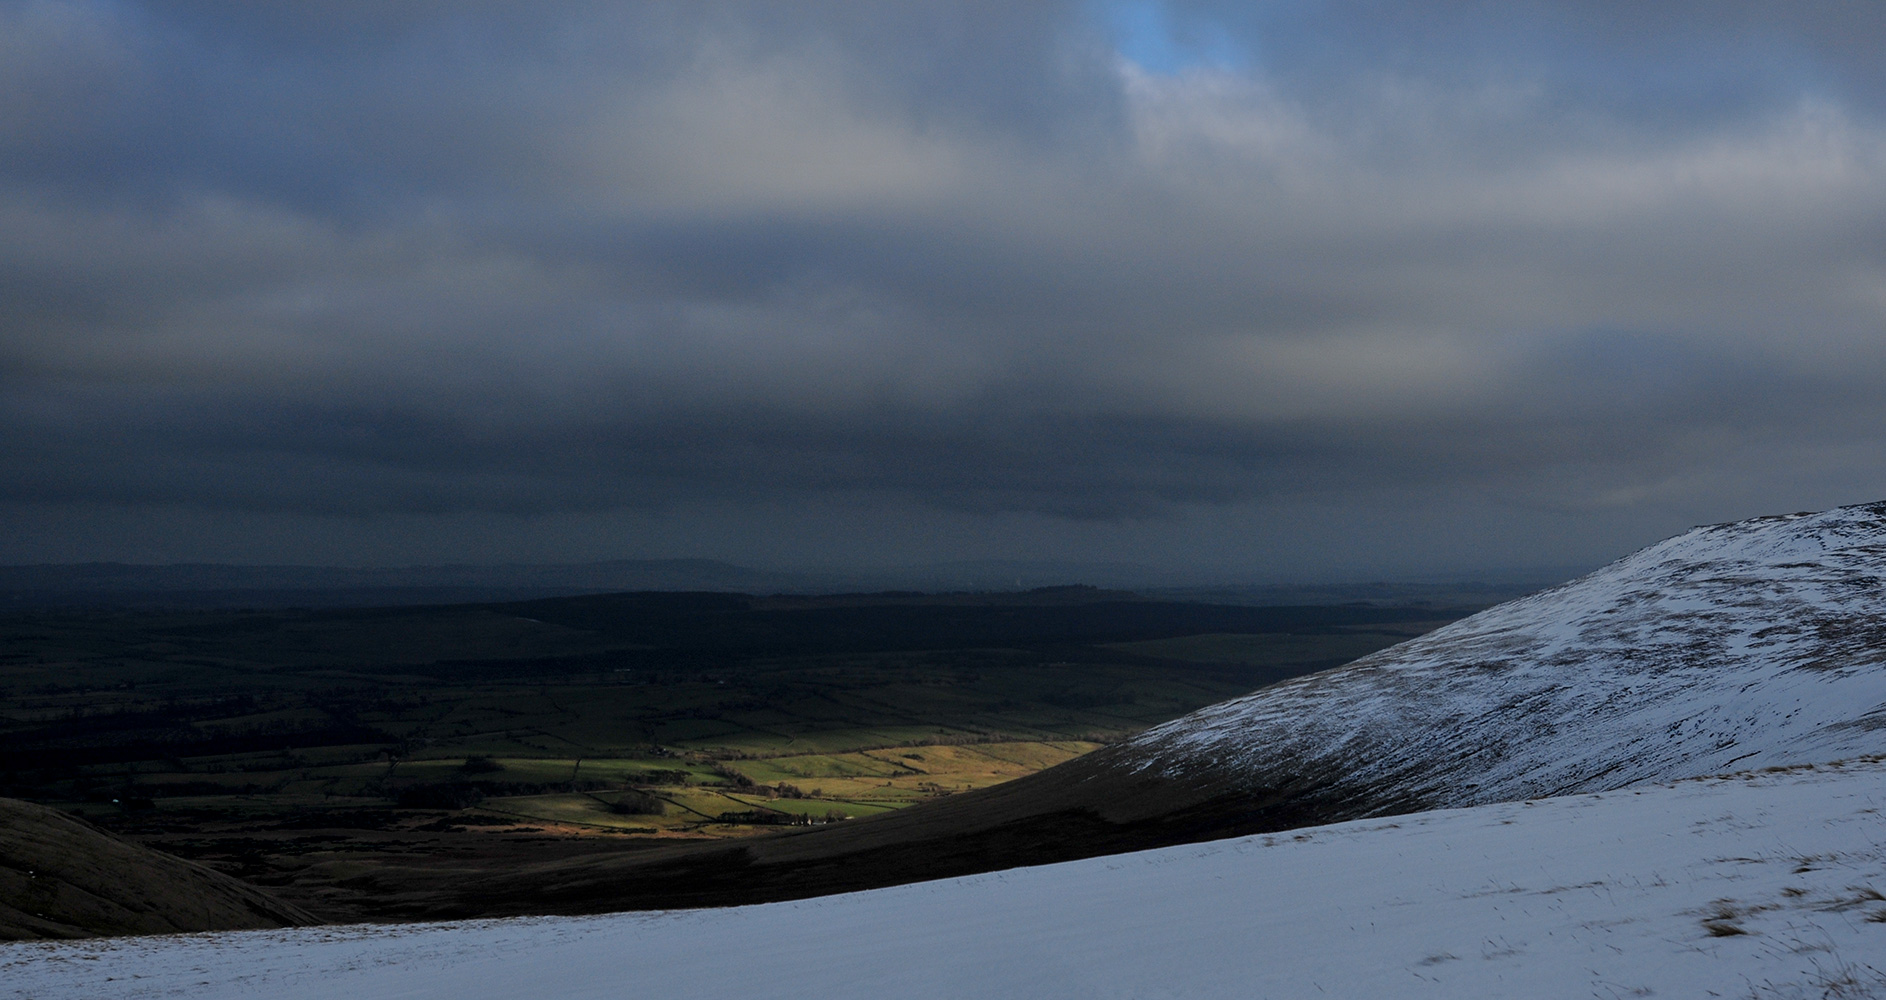 A winter afternoon on Carrock Fell, Cumbria